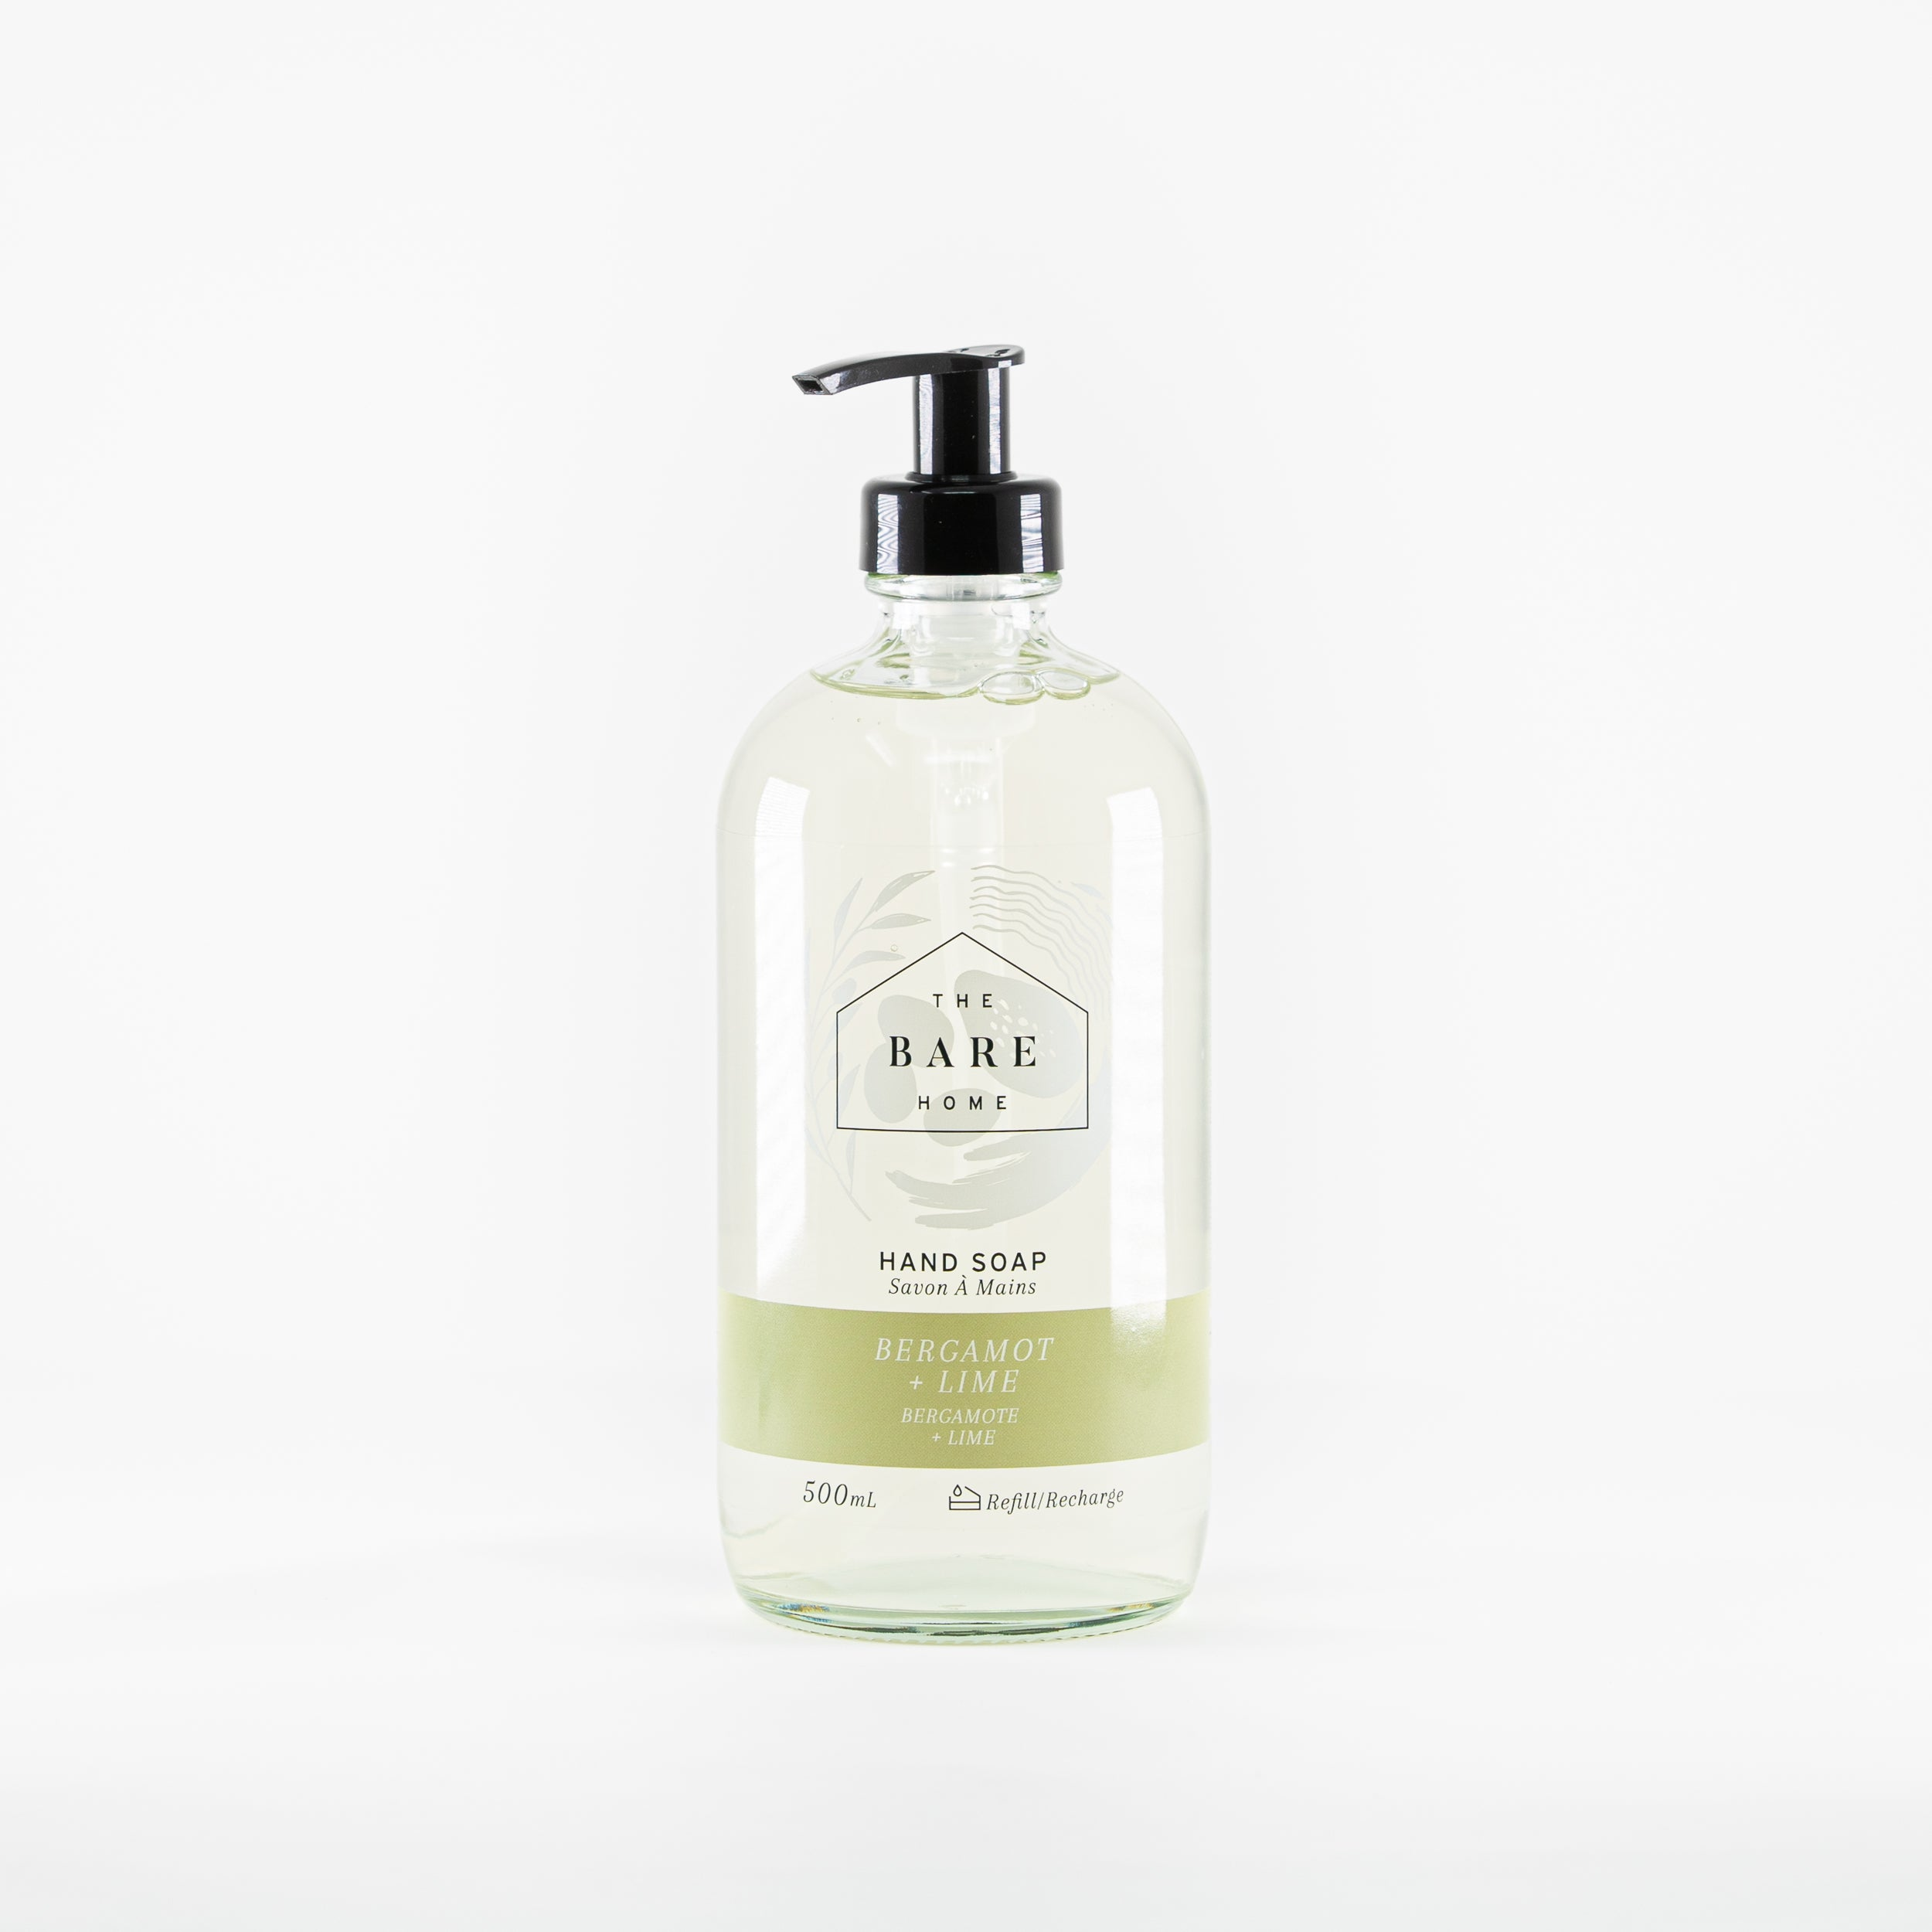 Plant-based hand soap, biodegradable, scented using organic essential oils available at Replenish General Store.